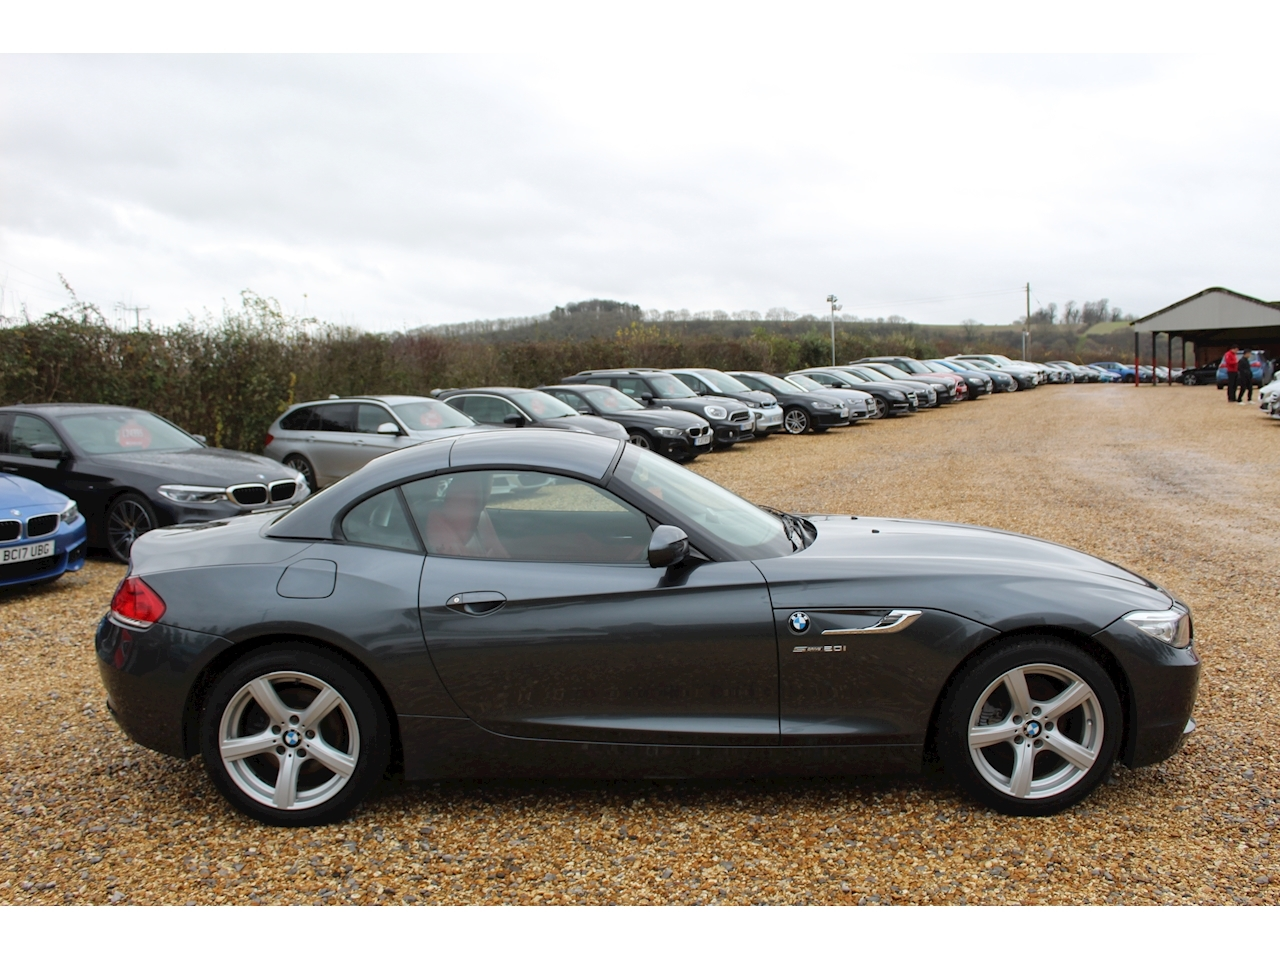 BMW Z4 Series Z4 sDrive20i Roadster Roadster 2.0 Manual Petrol